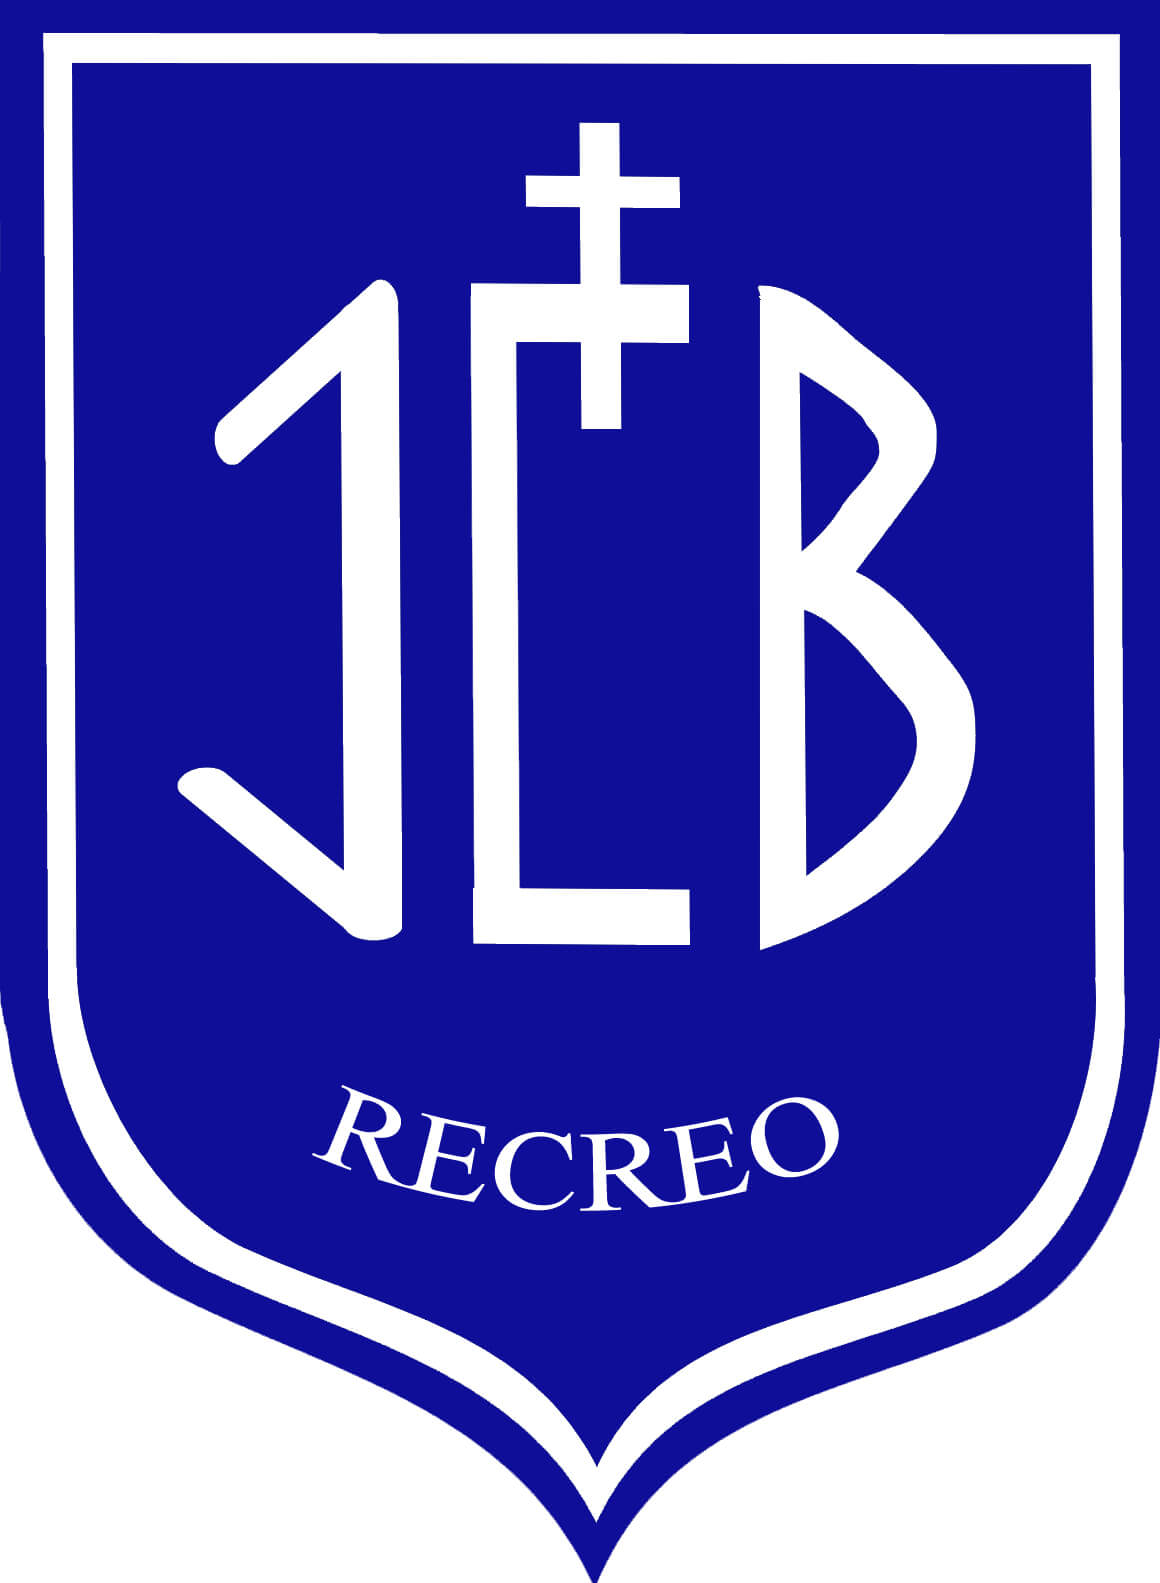 Liceo José Cortés Brown – Recreo